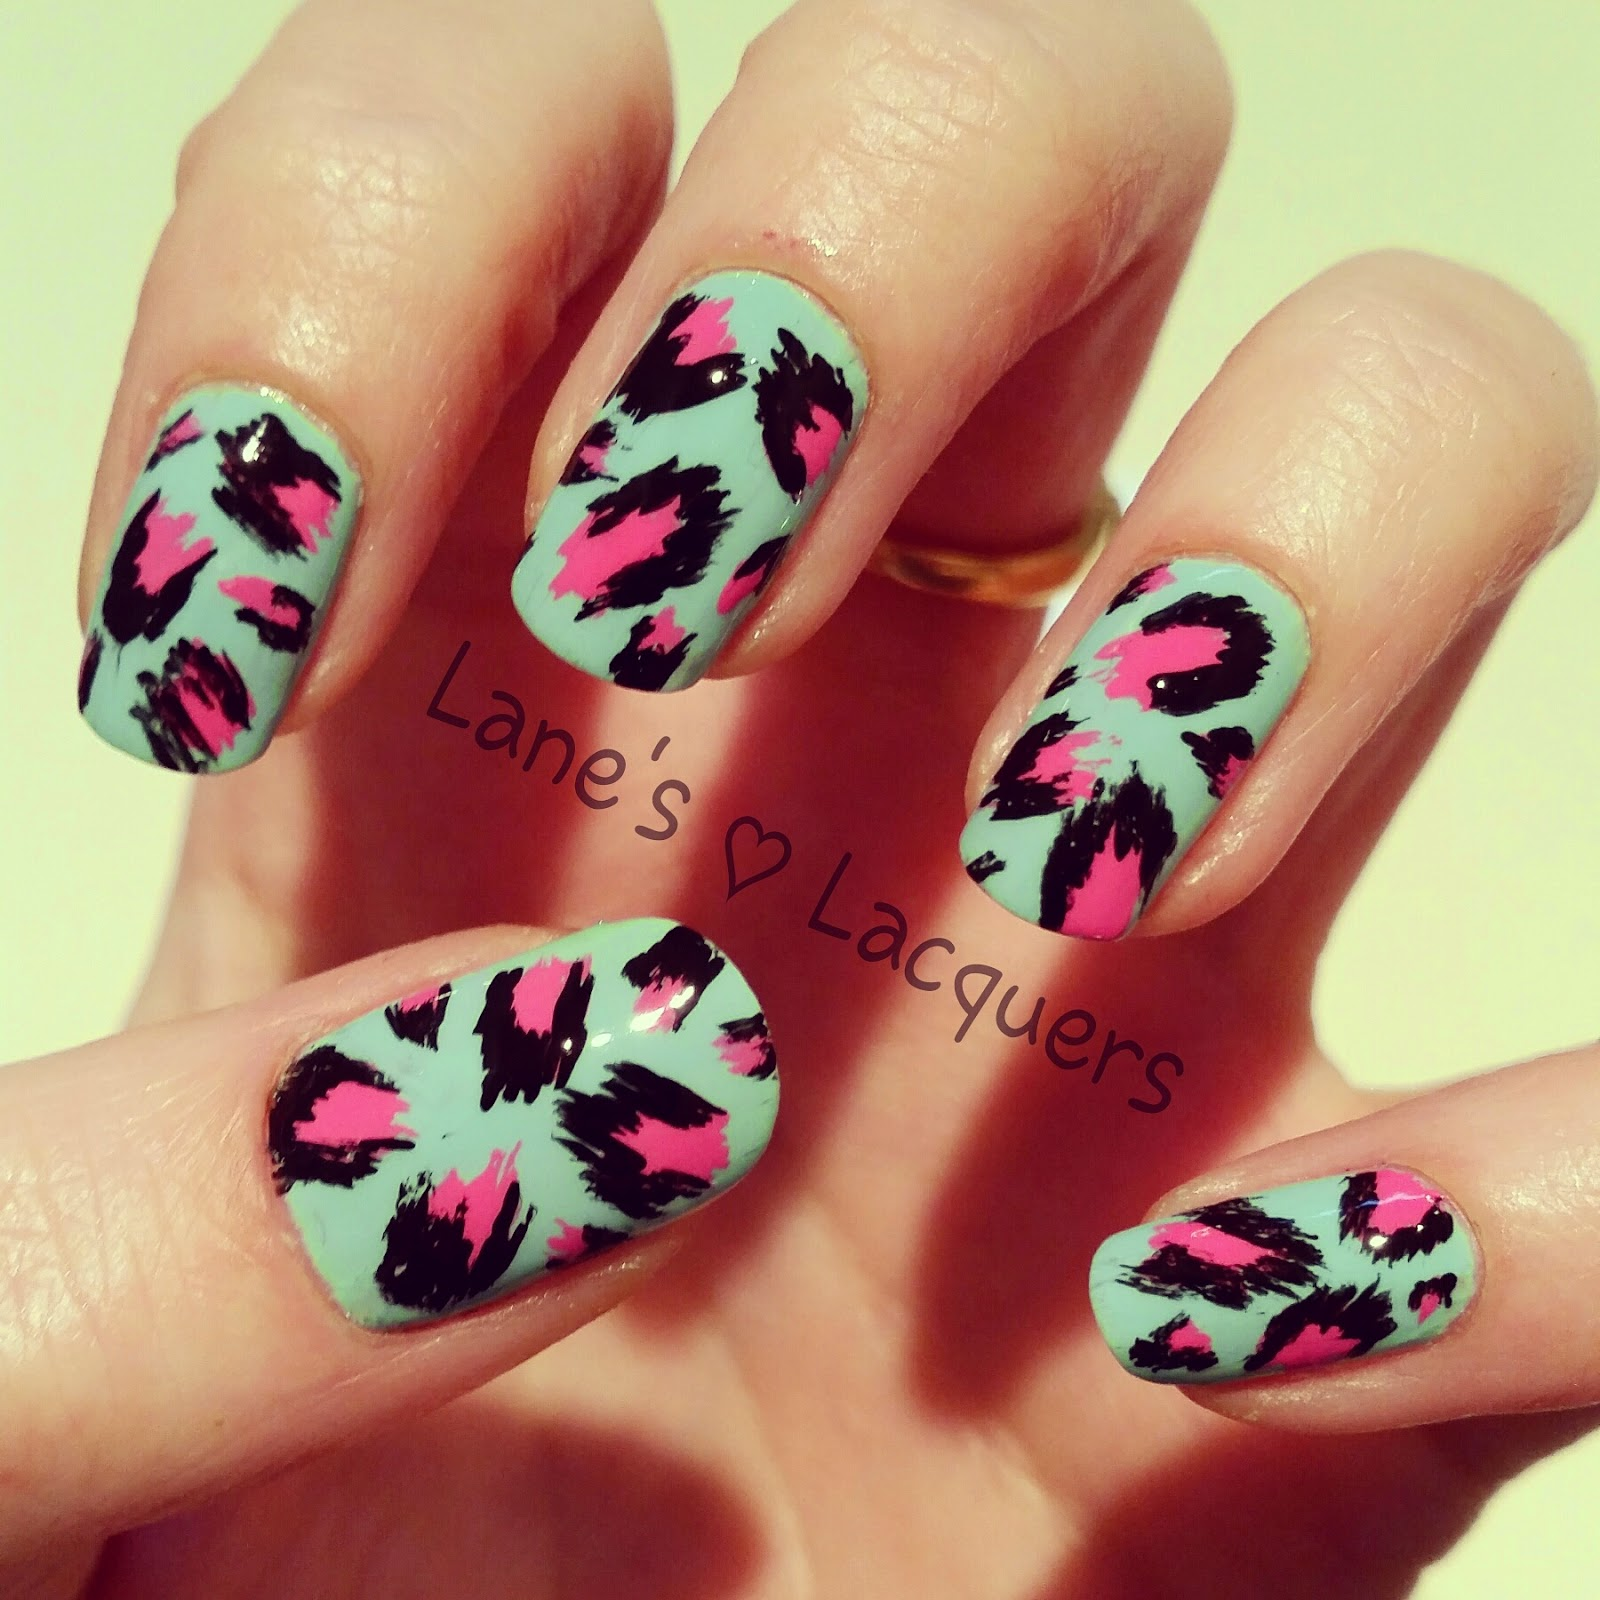 wah-nails-big-leopard-nail-art